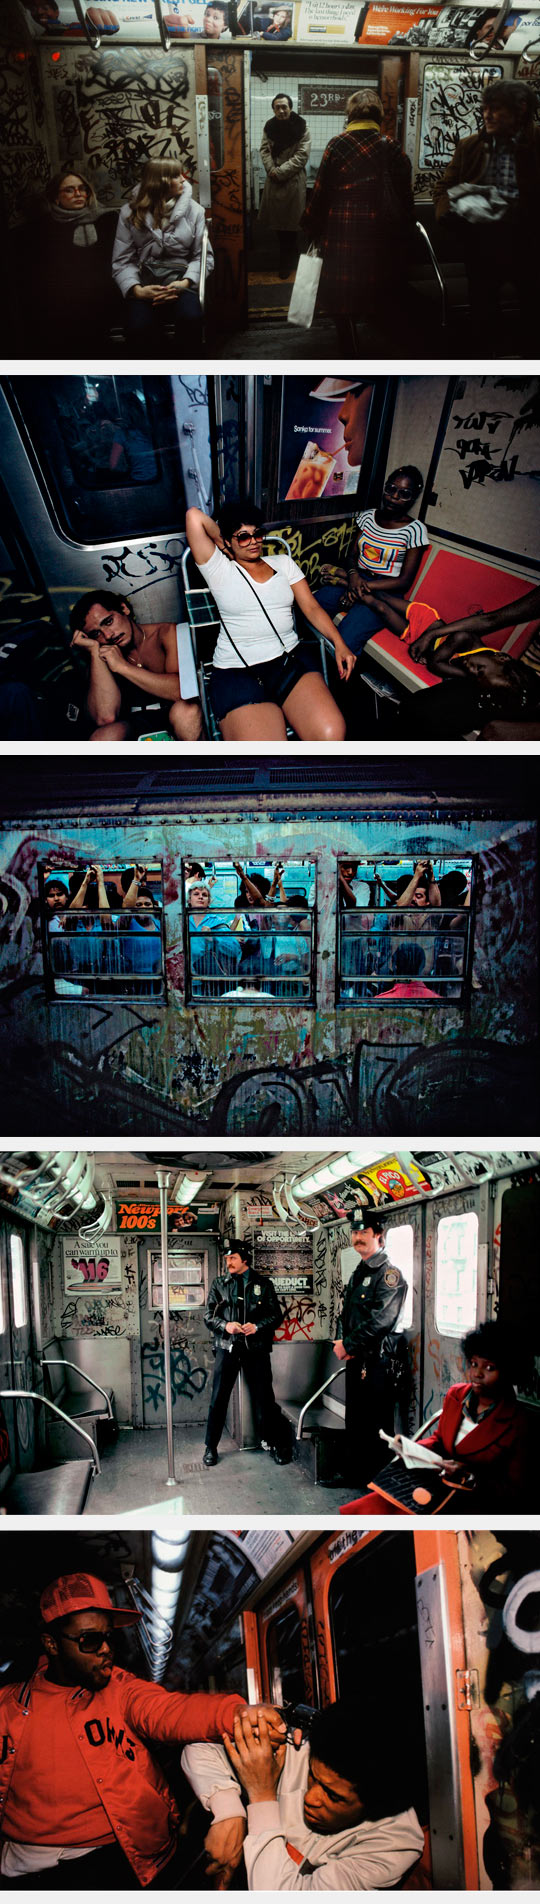 The New York City Subway In The 80